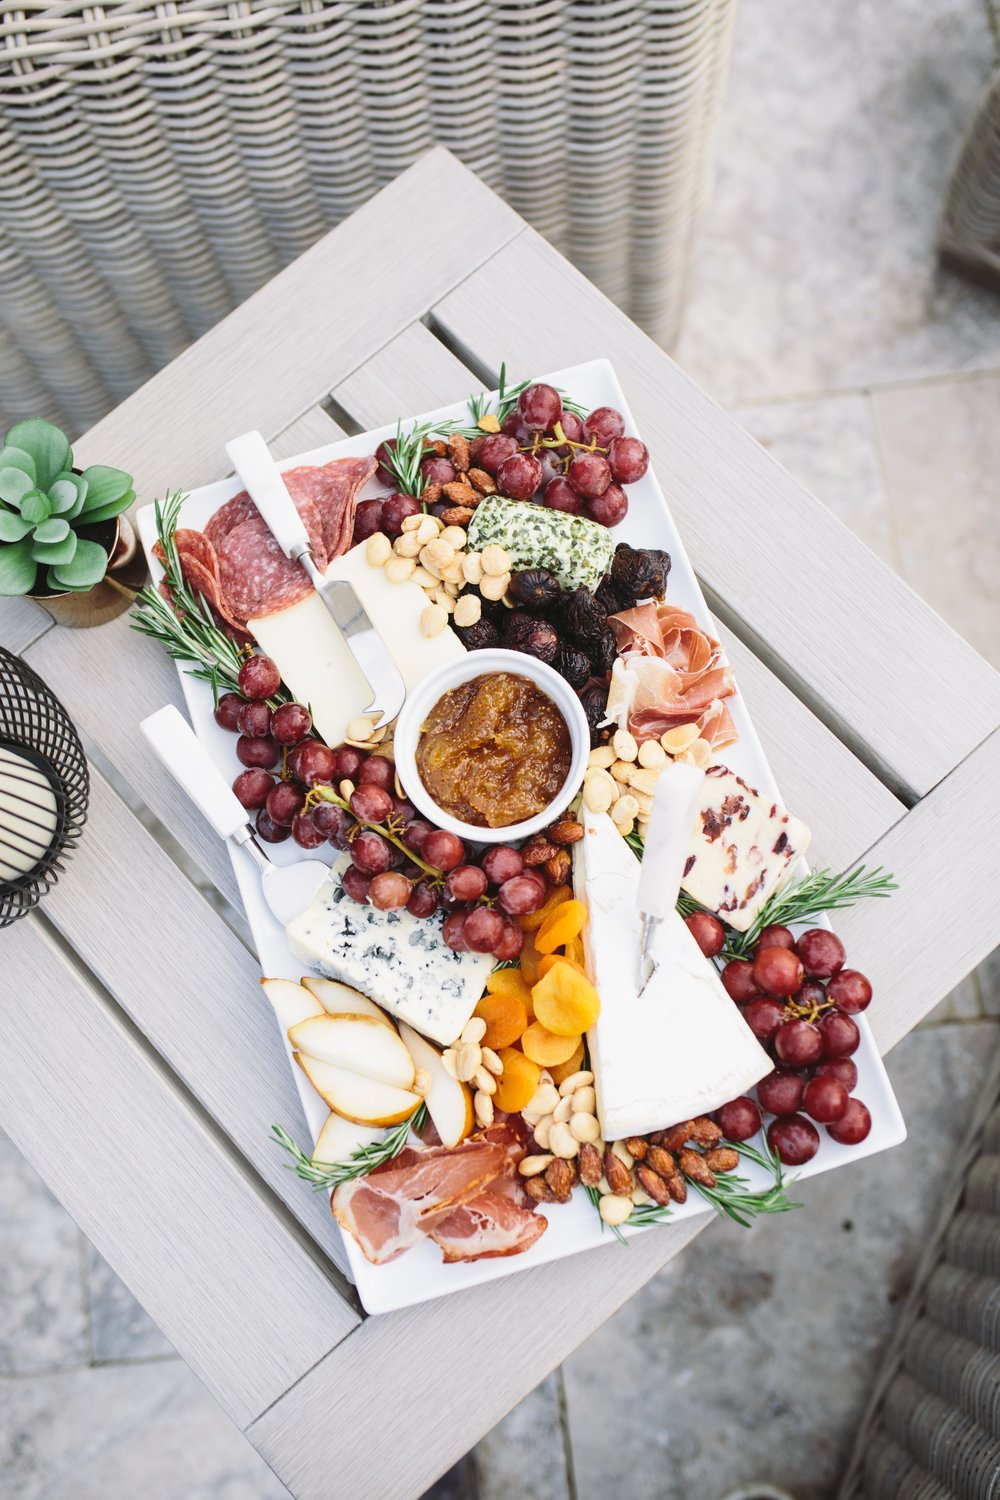 HOW TO MAKE A CHEESE PLATE FROM ABOVE